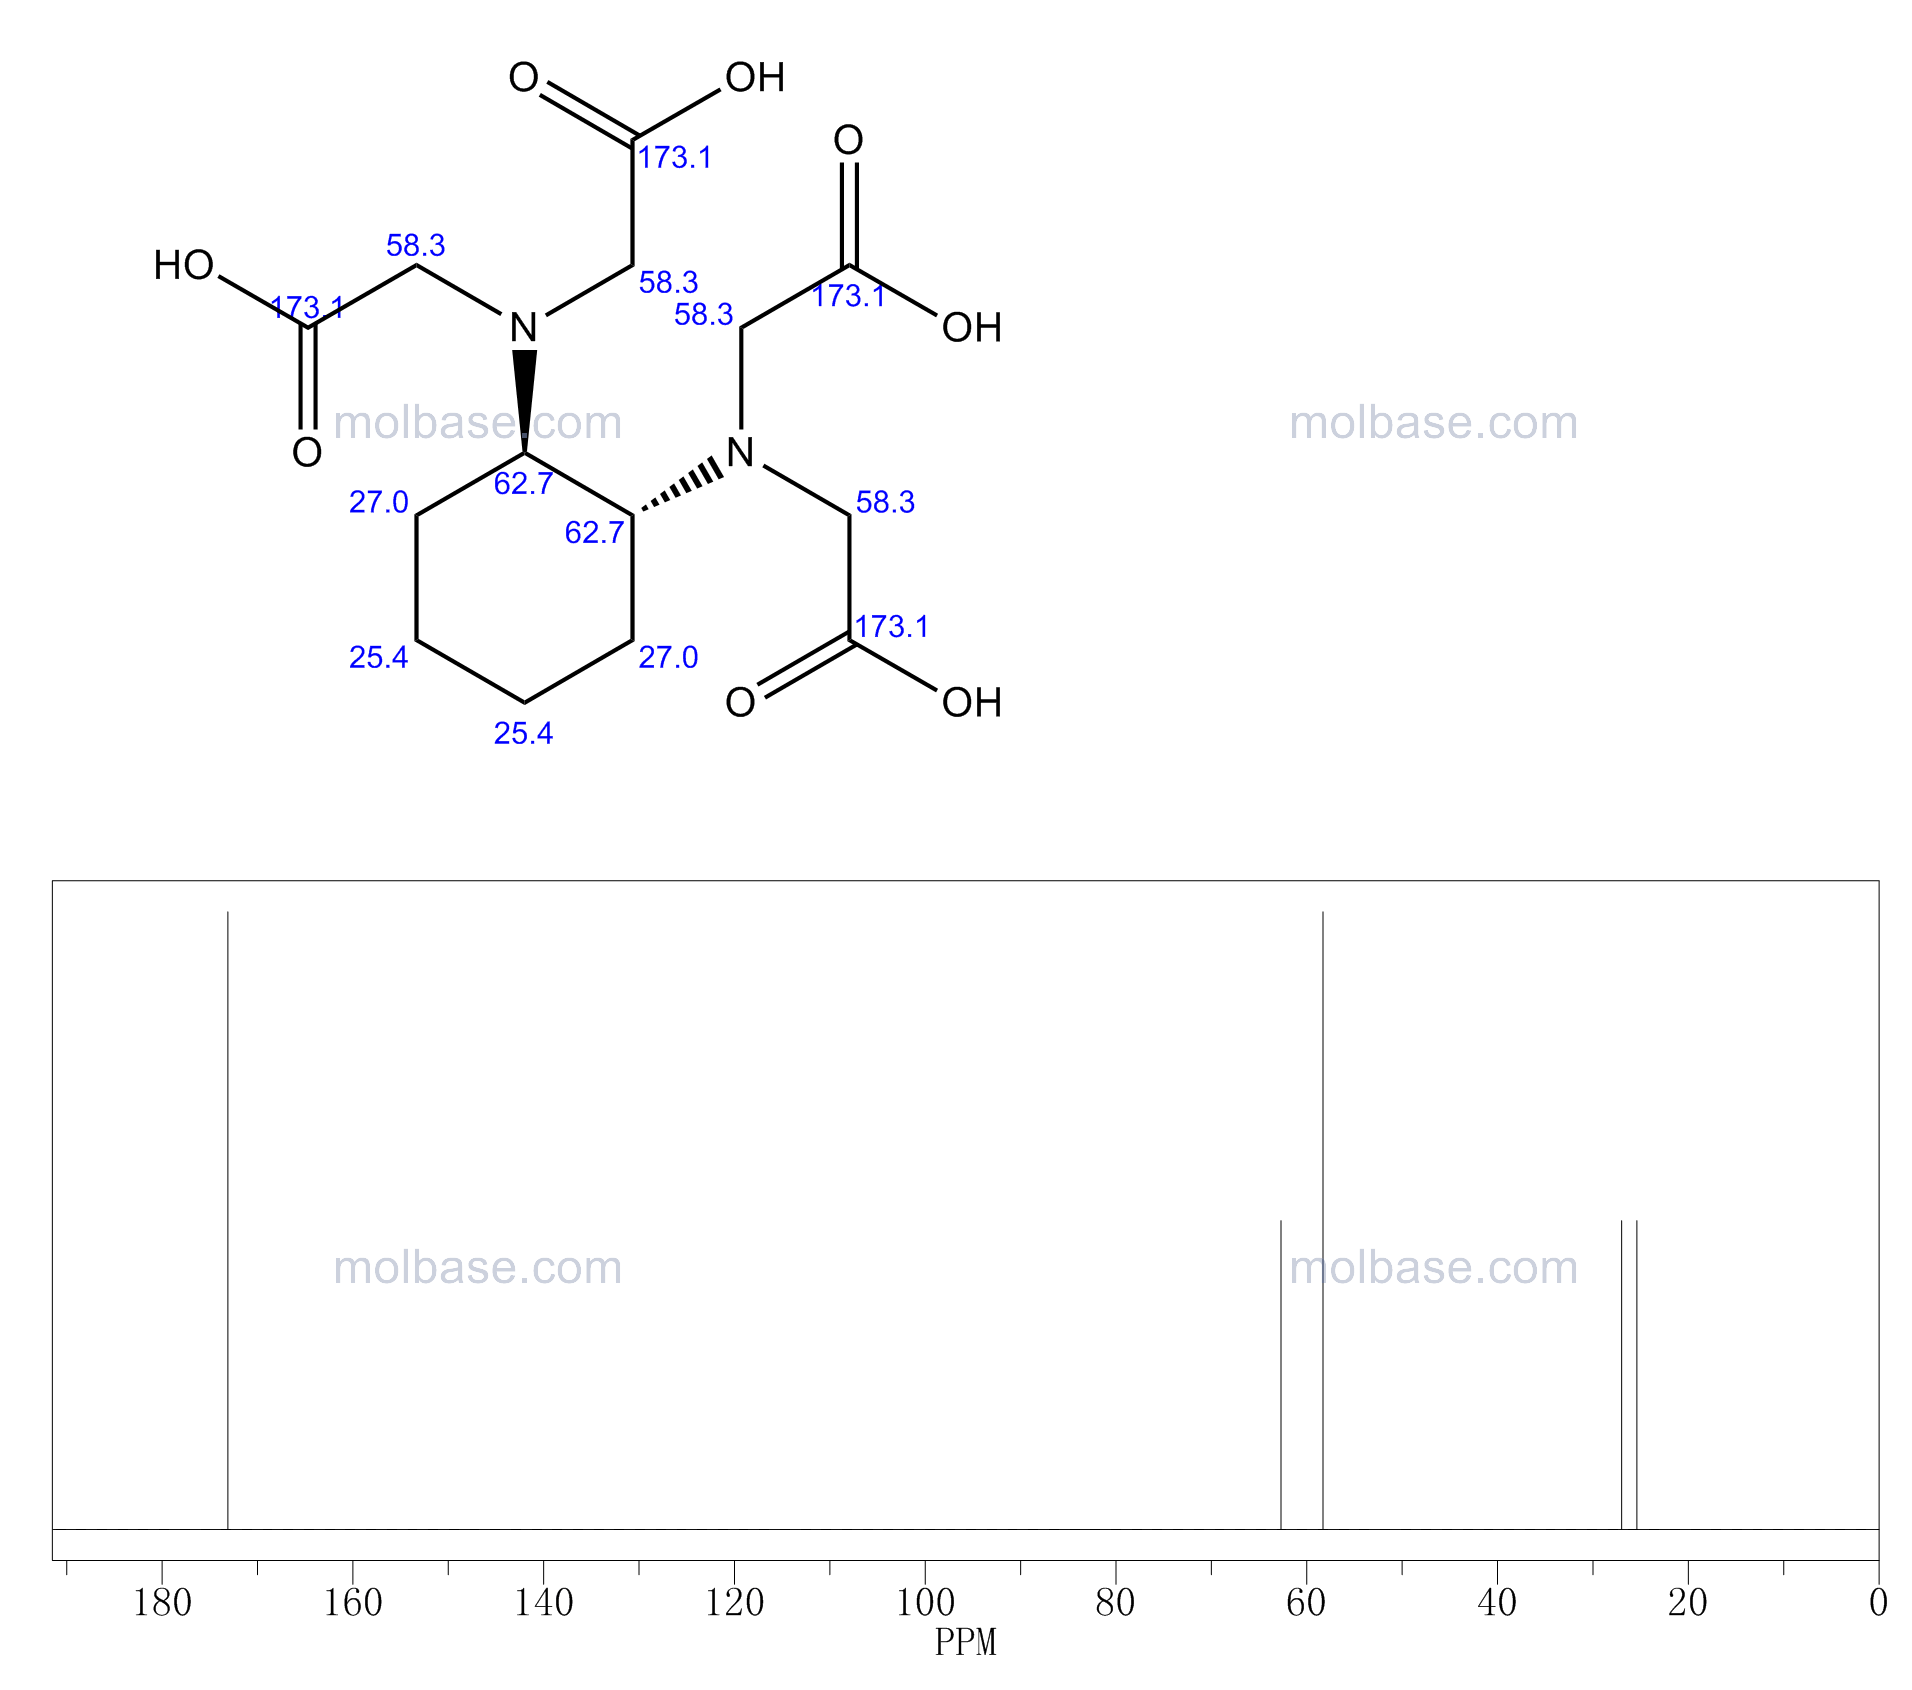 1,2-Cyclohexylenedinitrilotetraacetic acid NMR spectra analysis, Chemical CAS NO. 13291-61-7 NMR spectral analysis, 1,2-Cyclohexylenedinitrilotetraacetic acid C-NMR spectrum